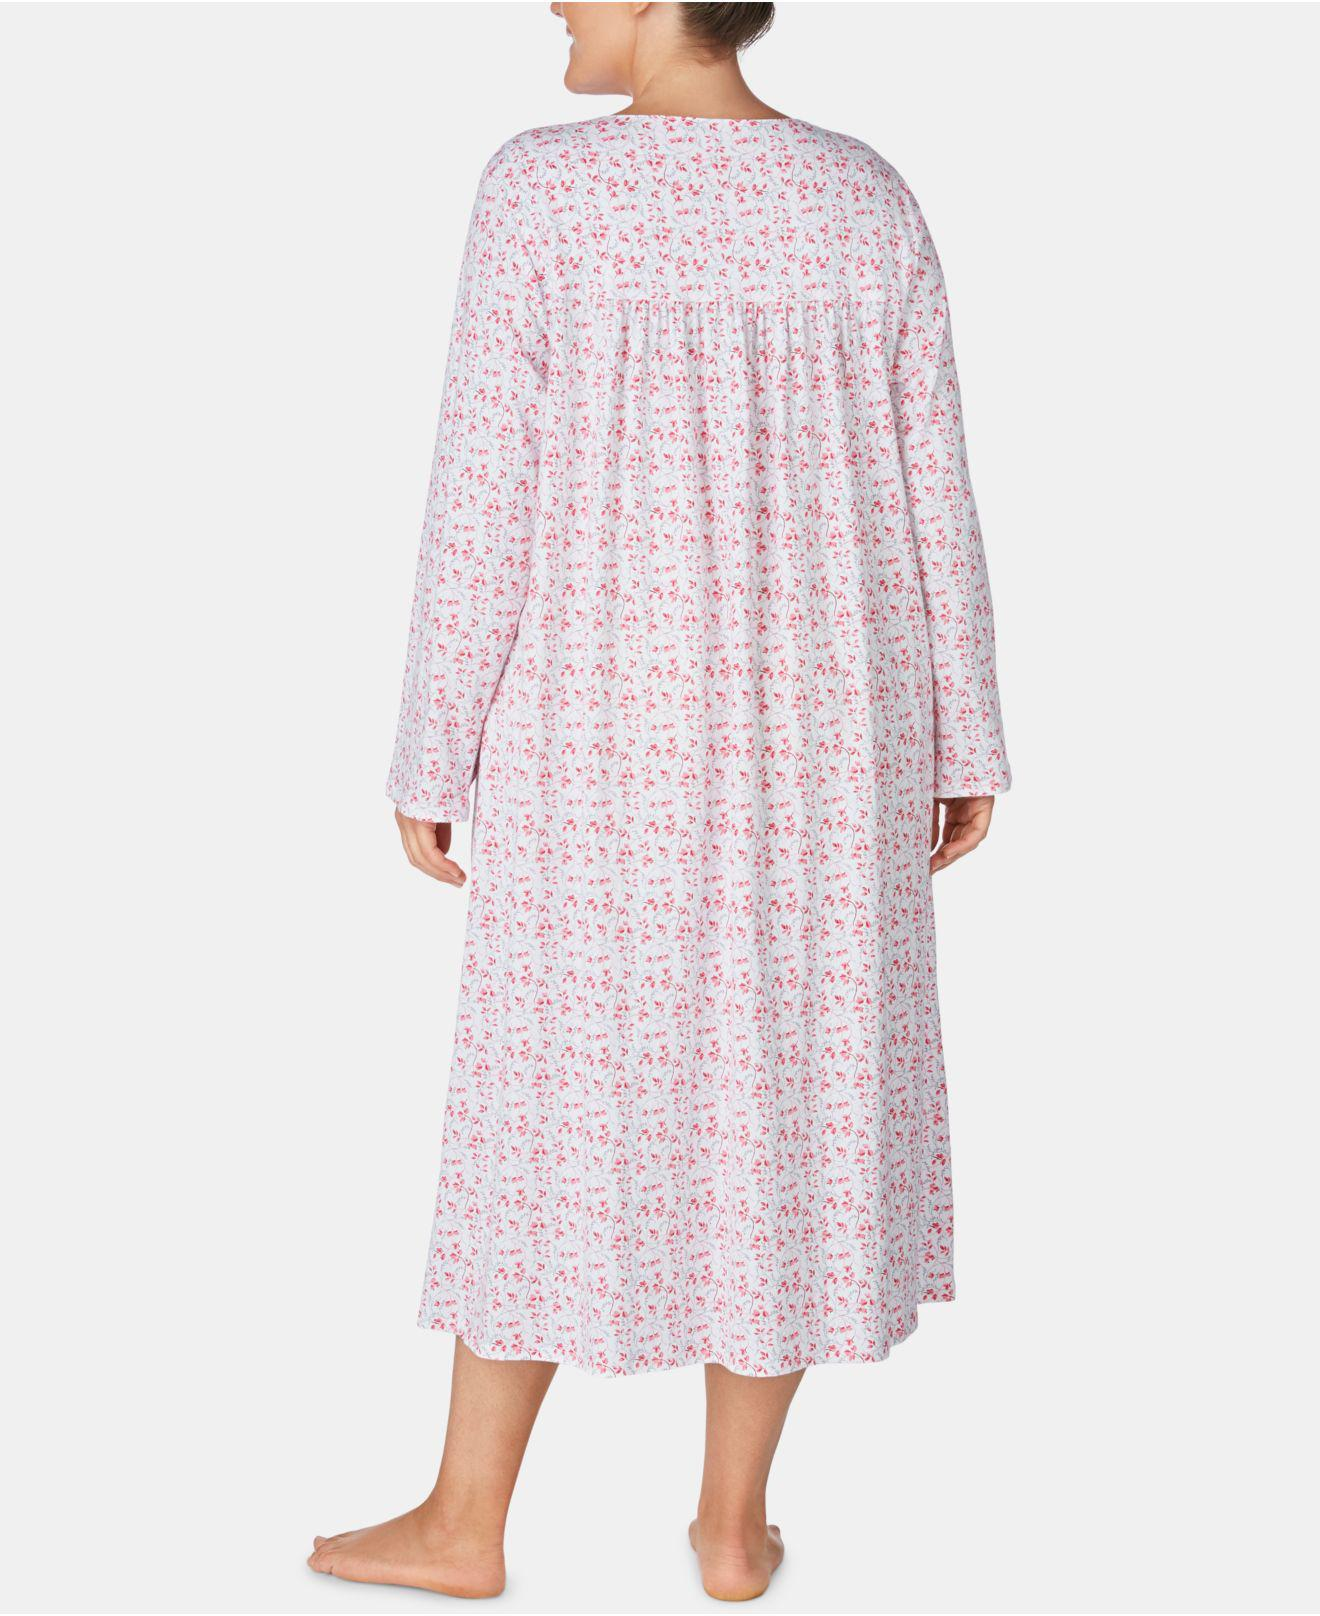 ce56dbc037 Lyst - Eileen West Plus Size Cotton Printed Ballet Nightgown in Pink